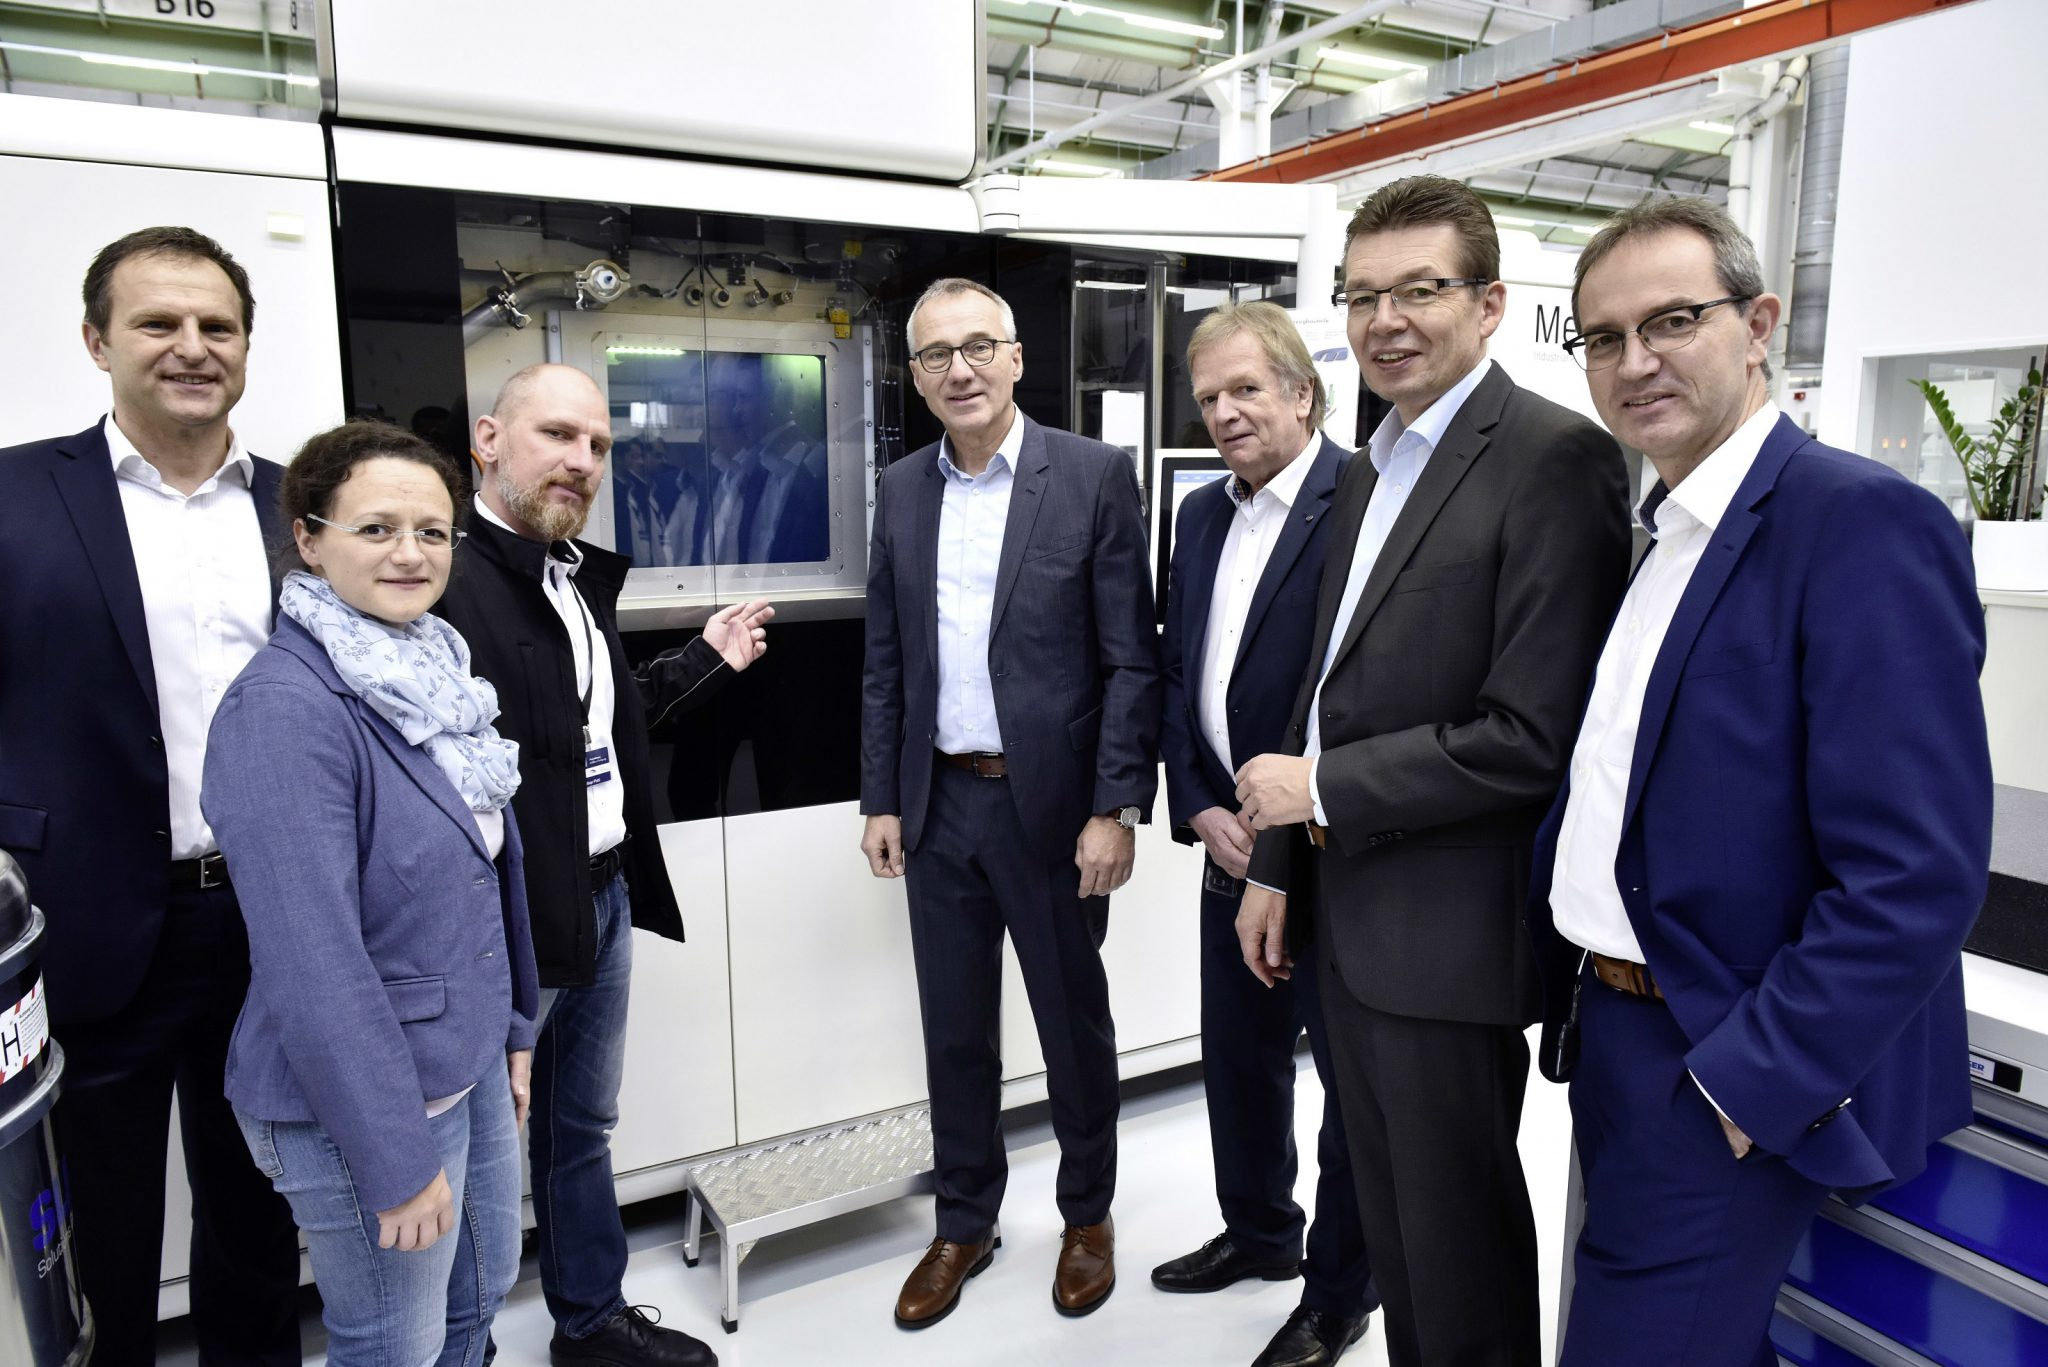 Oliver Pohl, Head of Additive Manufacturing at Volkswagen (third from left) presents the new 3D printing center to visitors from the European Works Council and management. To note: The machine in the background appears to be a MetalFAB1 system from Dutch manufacturer Additive Industries. Photo via Volkswagen